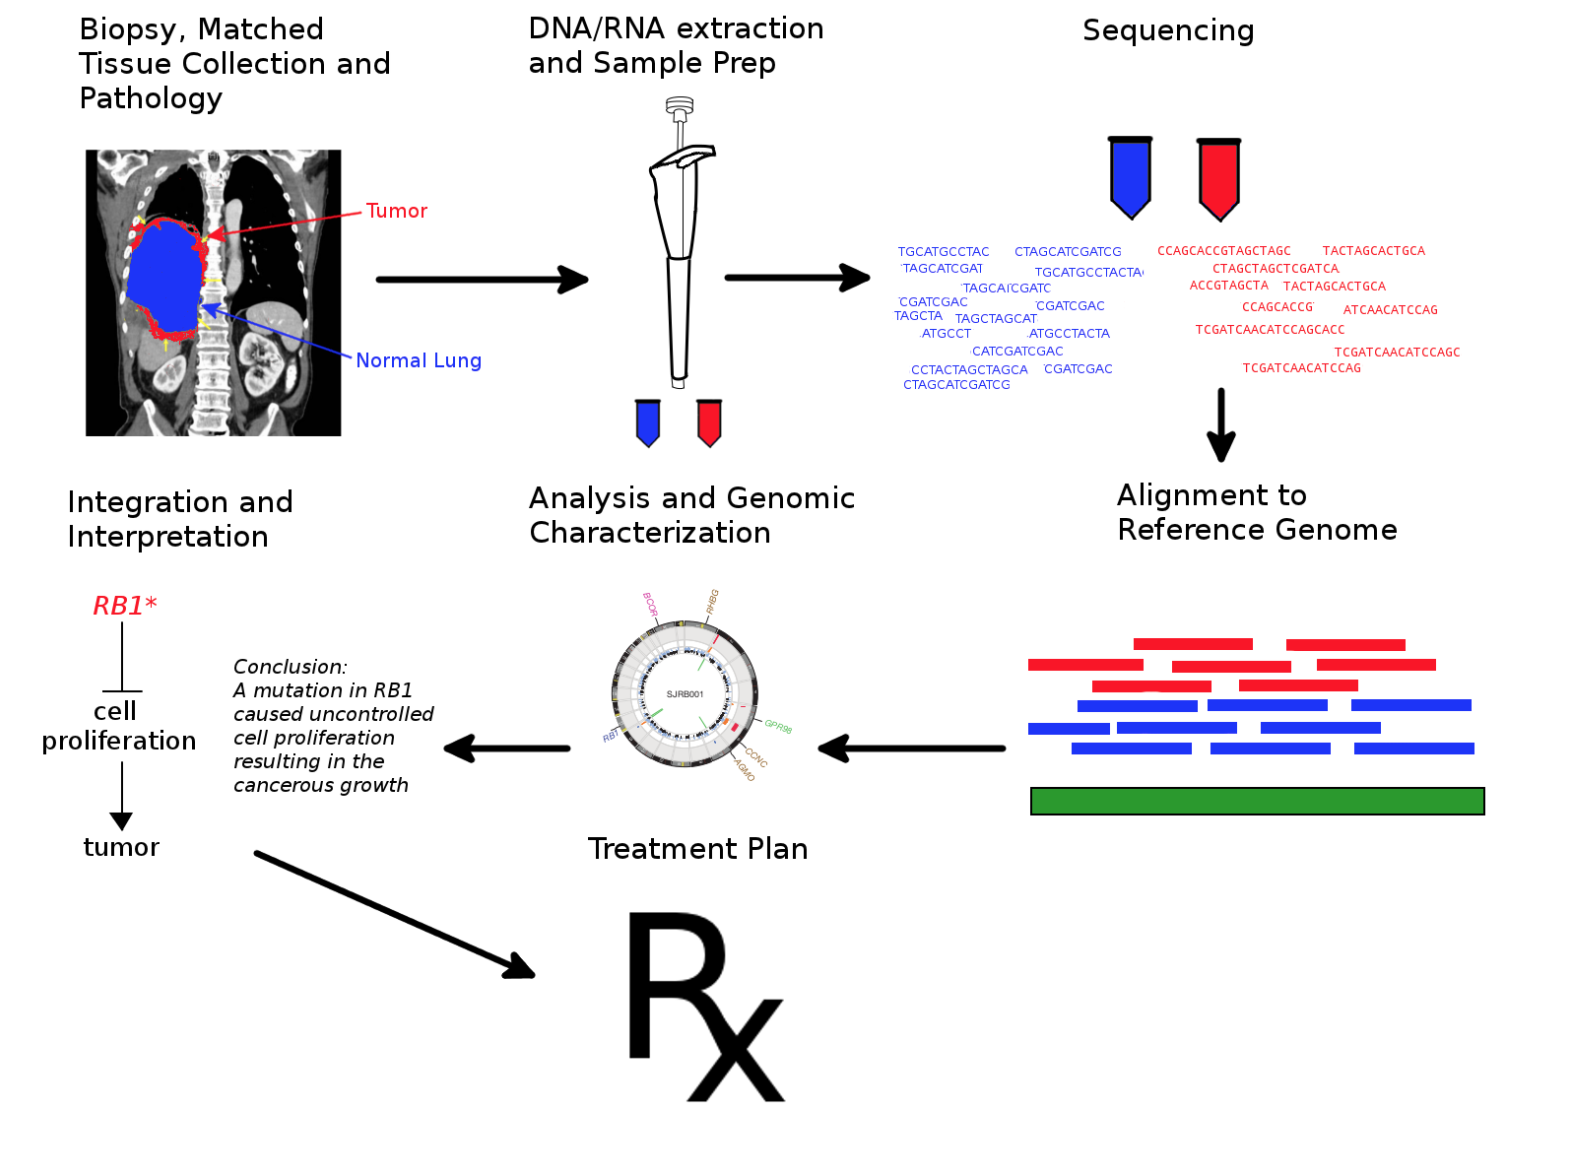 Cancer Sequencing Diagram